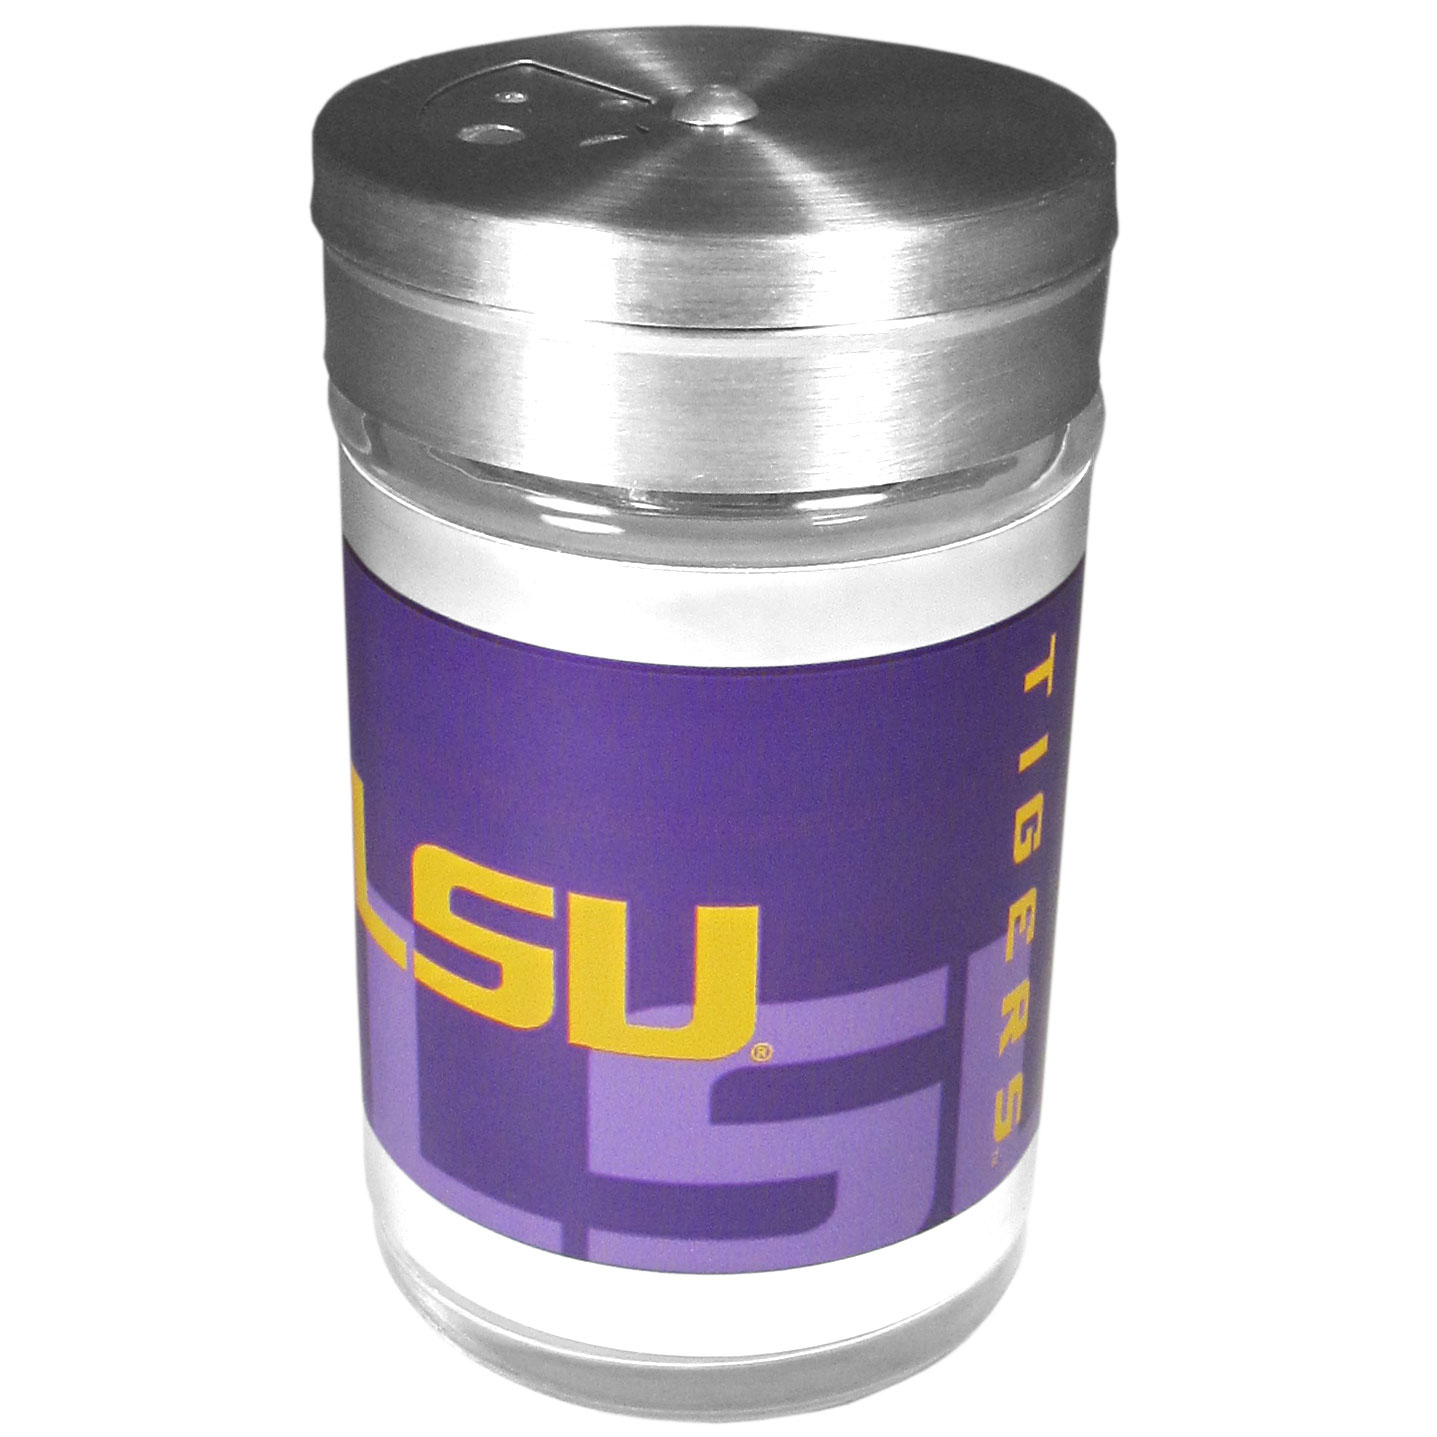 LSU Tigers Tailgater Season Shakers - Spice it up with our LSU Tigers tailgater season shakers! This compact shaker is 2 inch tall with a twist top that closes off the holes at the top making it perfect for travel preventing those messy spills. The shaker has wide holes perfect for keeping your pepper seeds or cheese toppings. The bright team graphics will make you the envy of the other fans while you are grilling up your tailgating goodies.